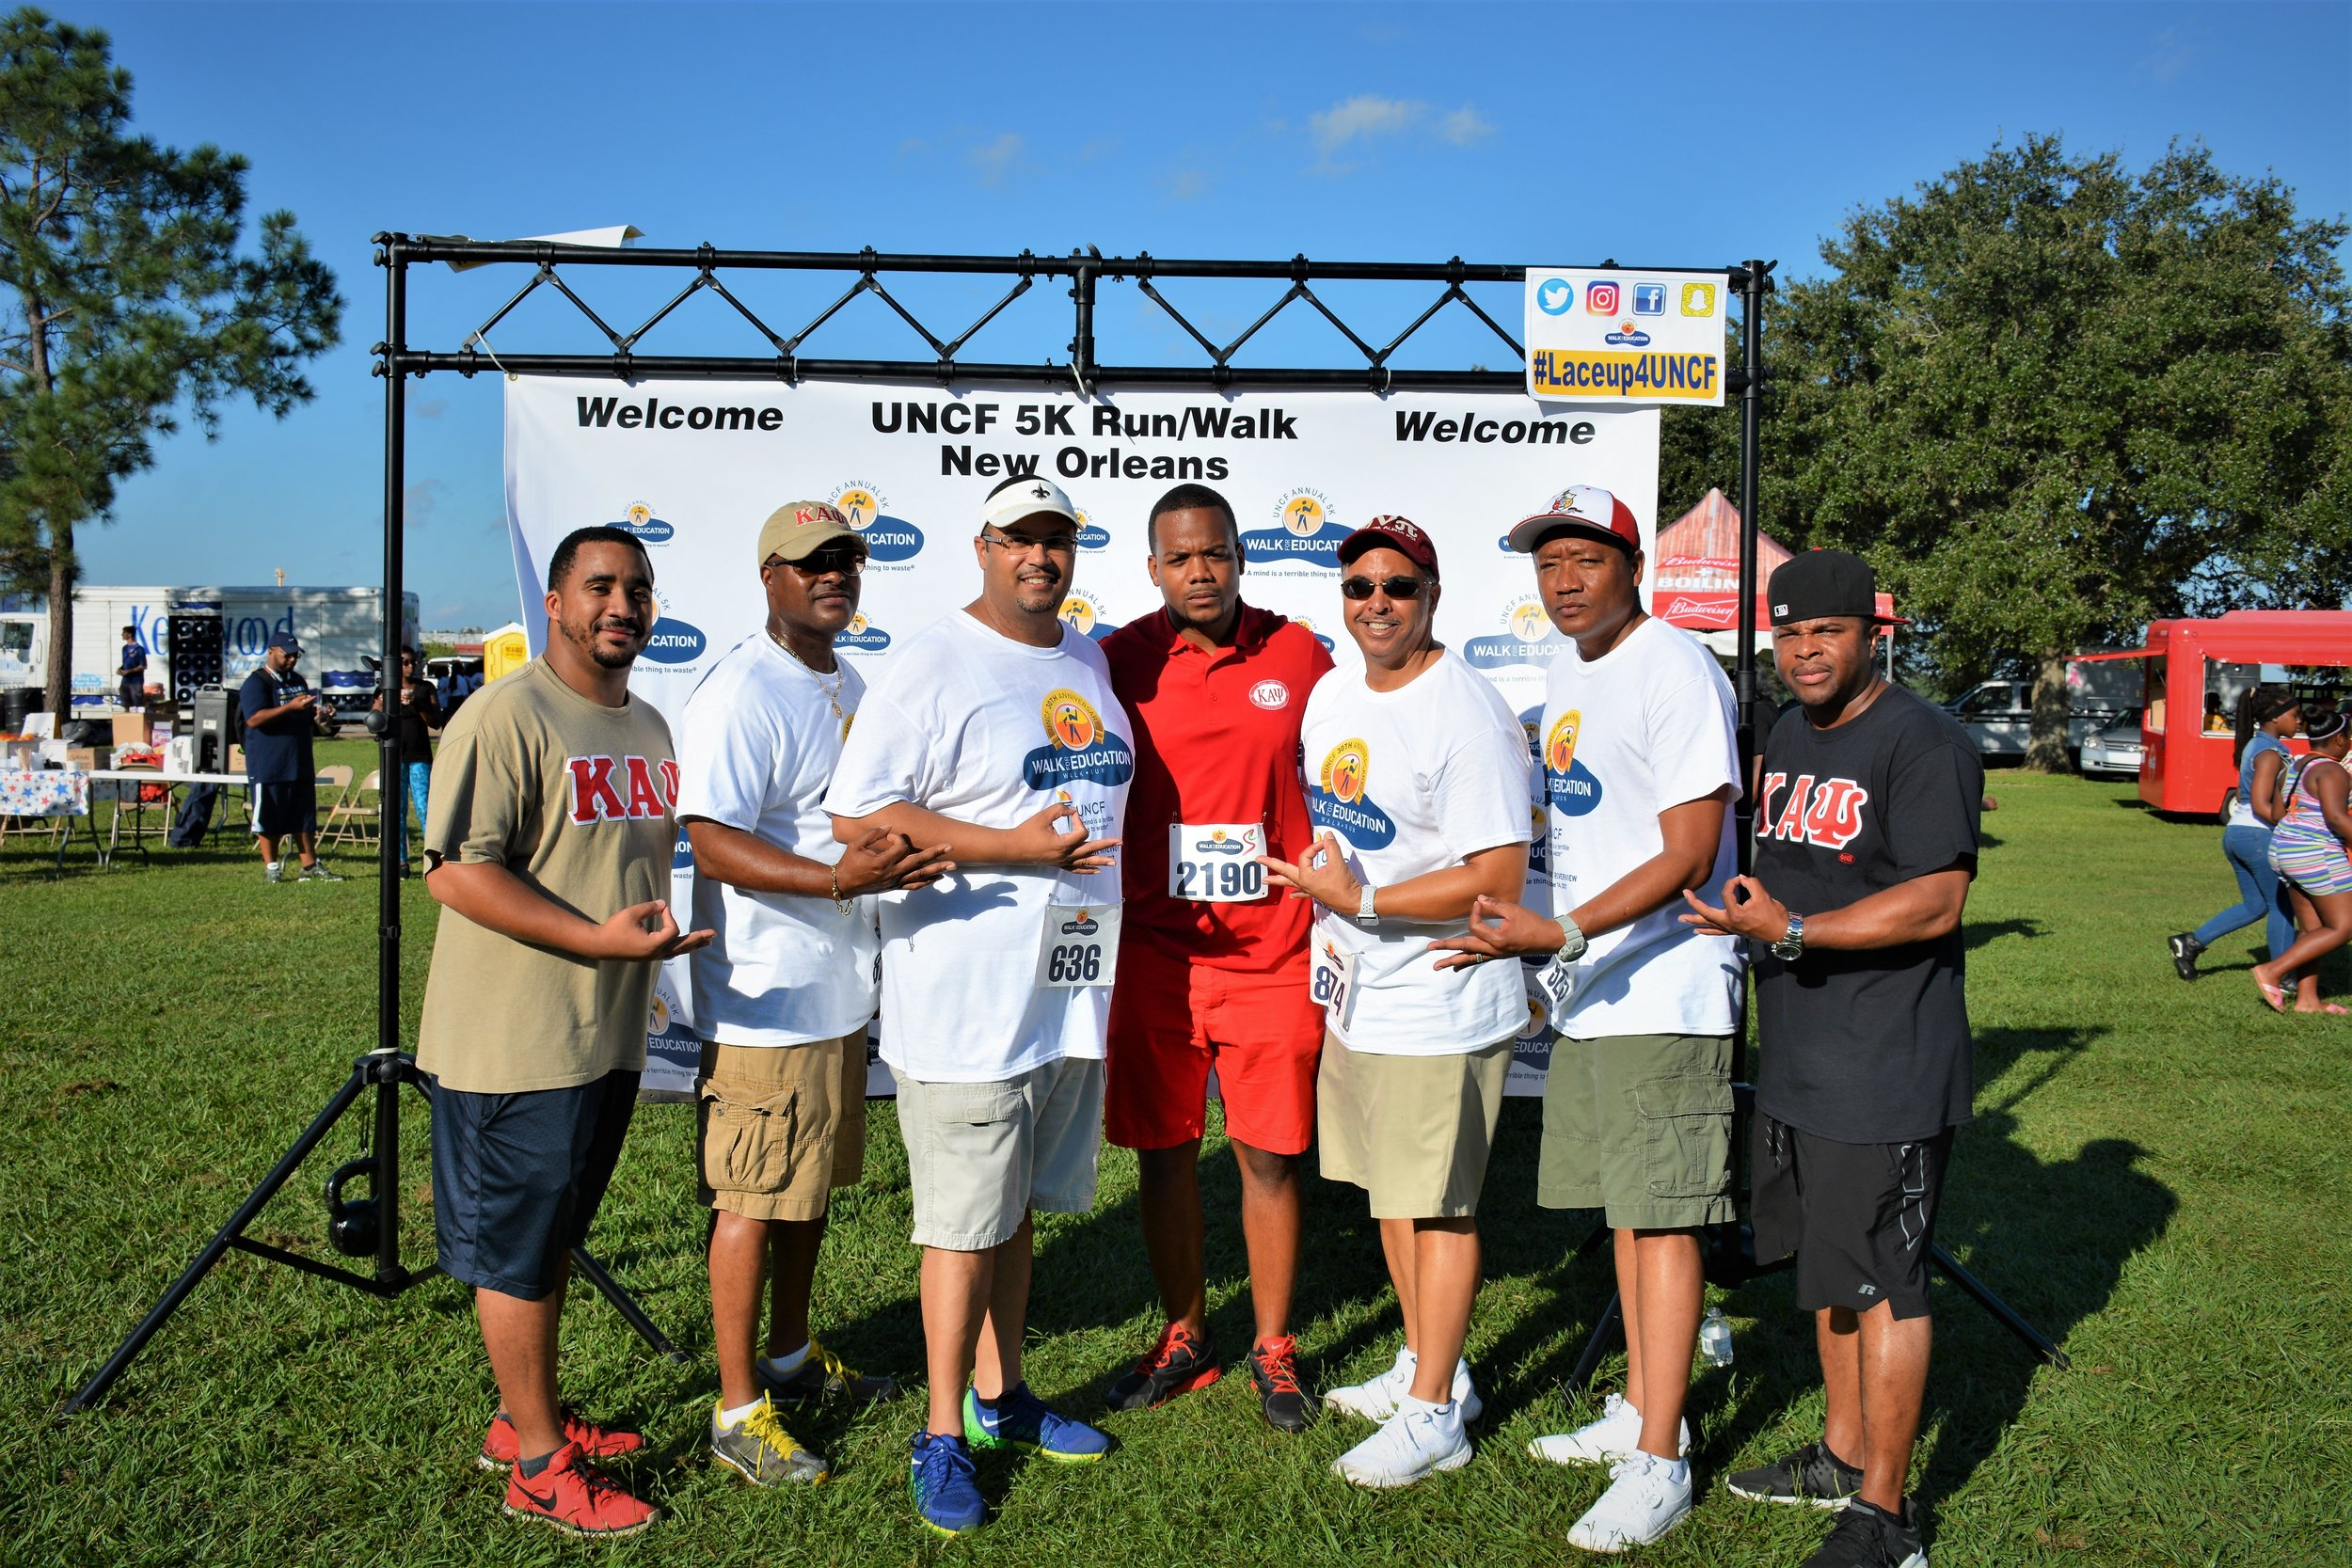 Supporting the UNCF walk with my Frat brothers